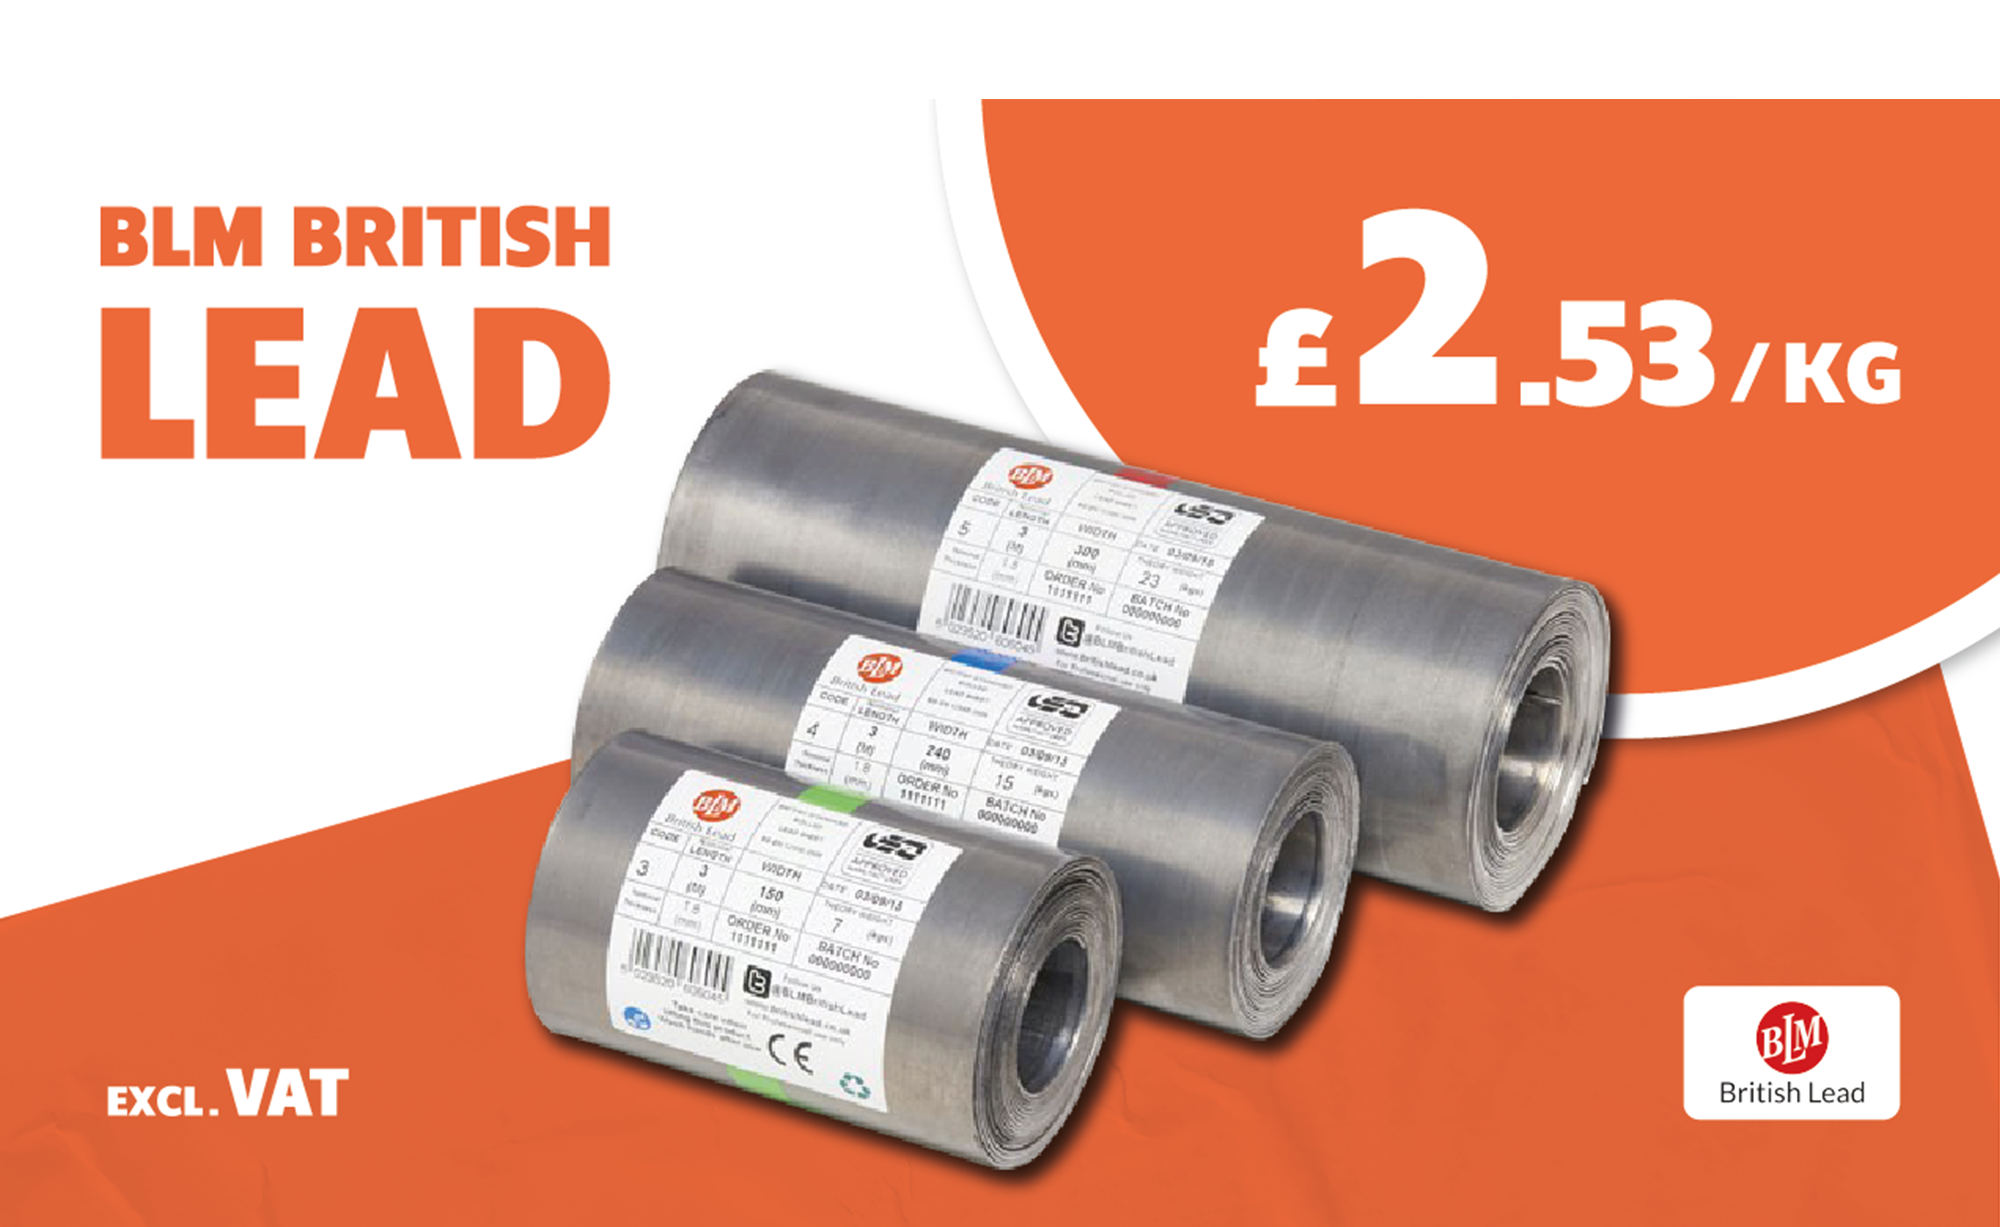 BLM LEAD ONLY £2.53/KG